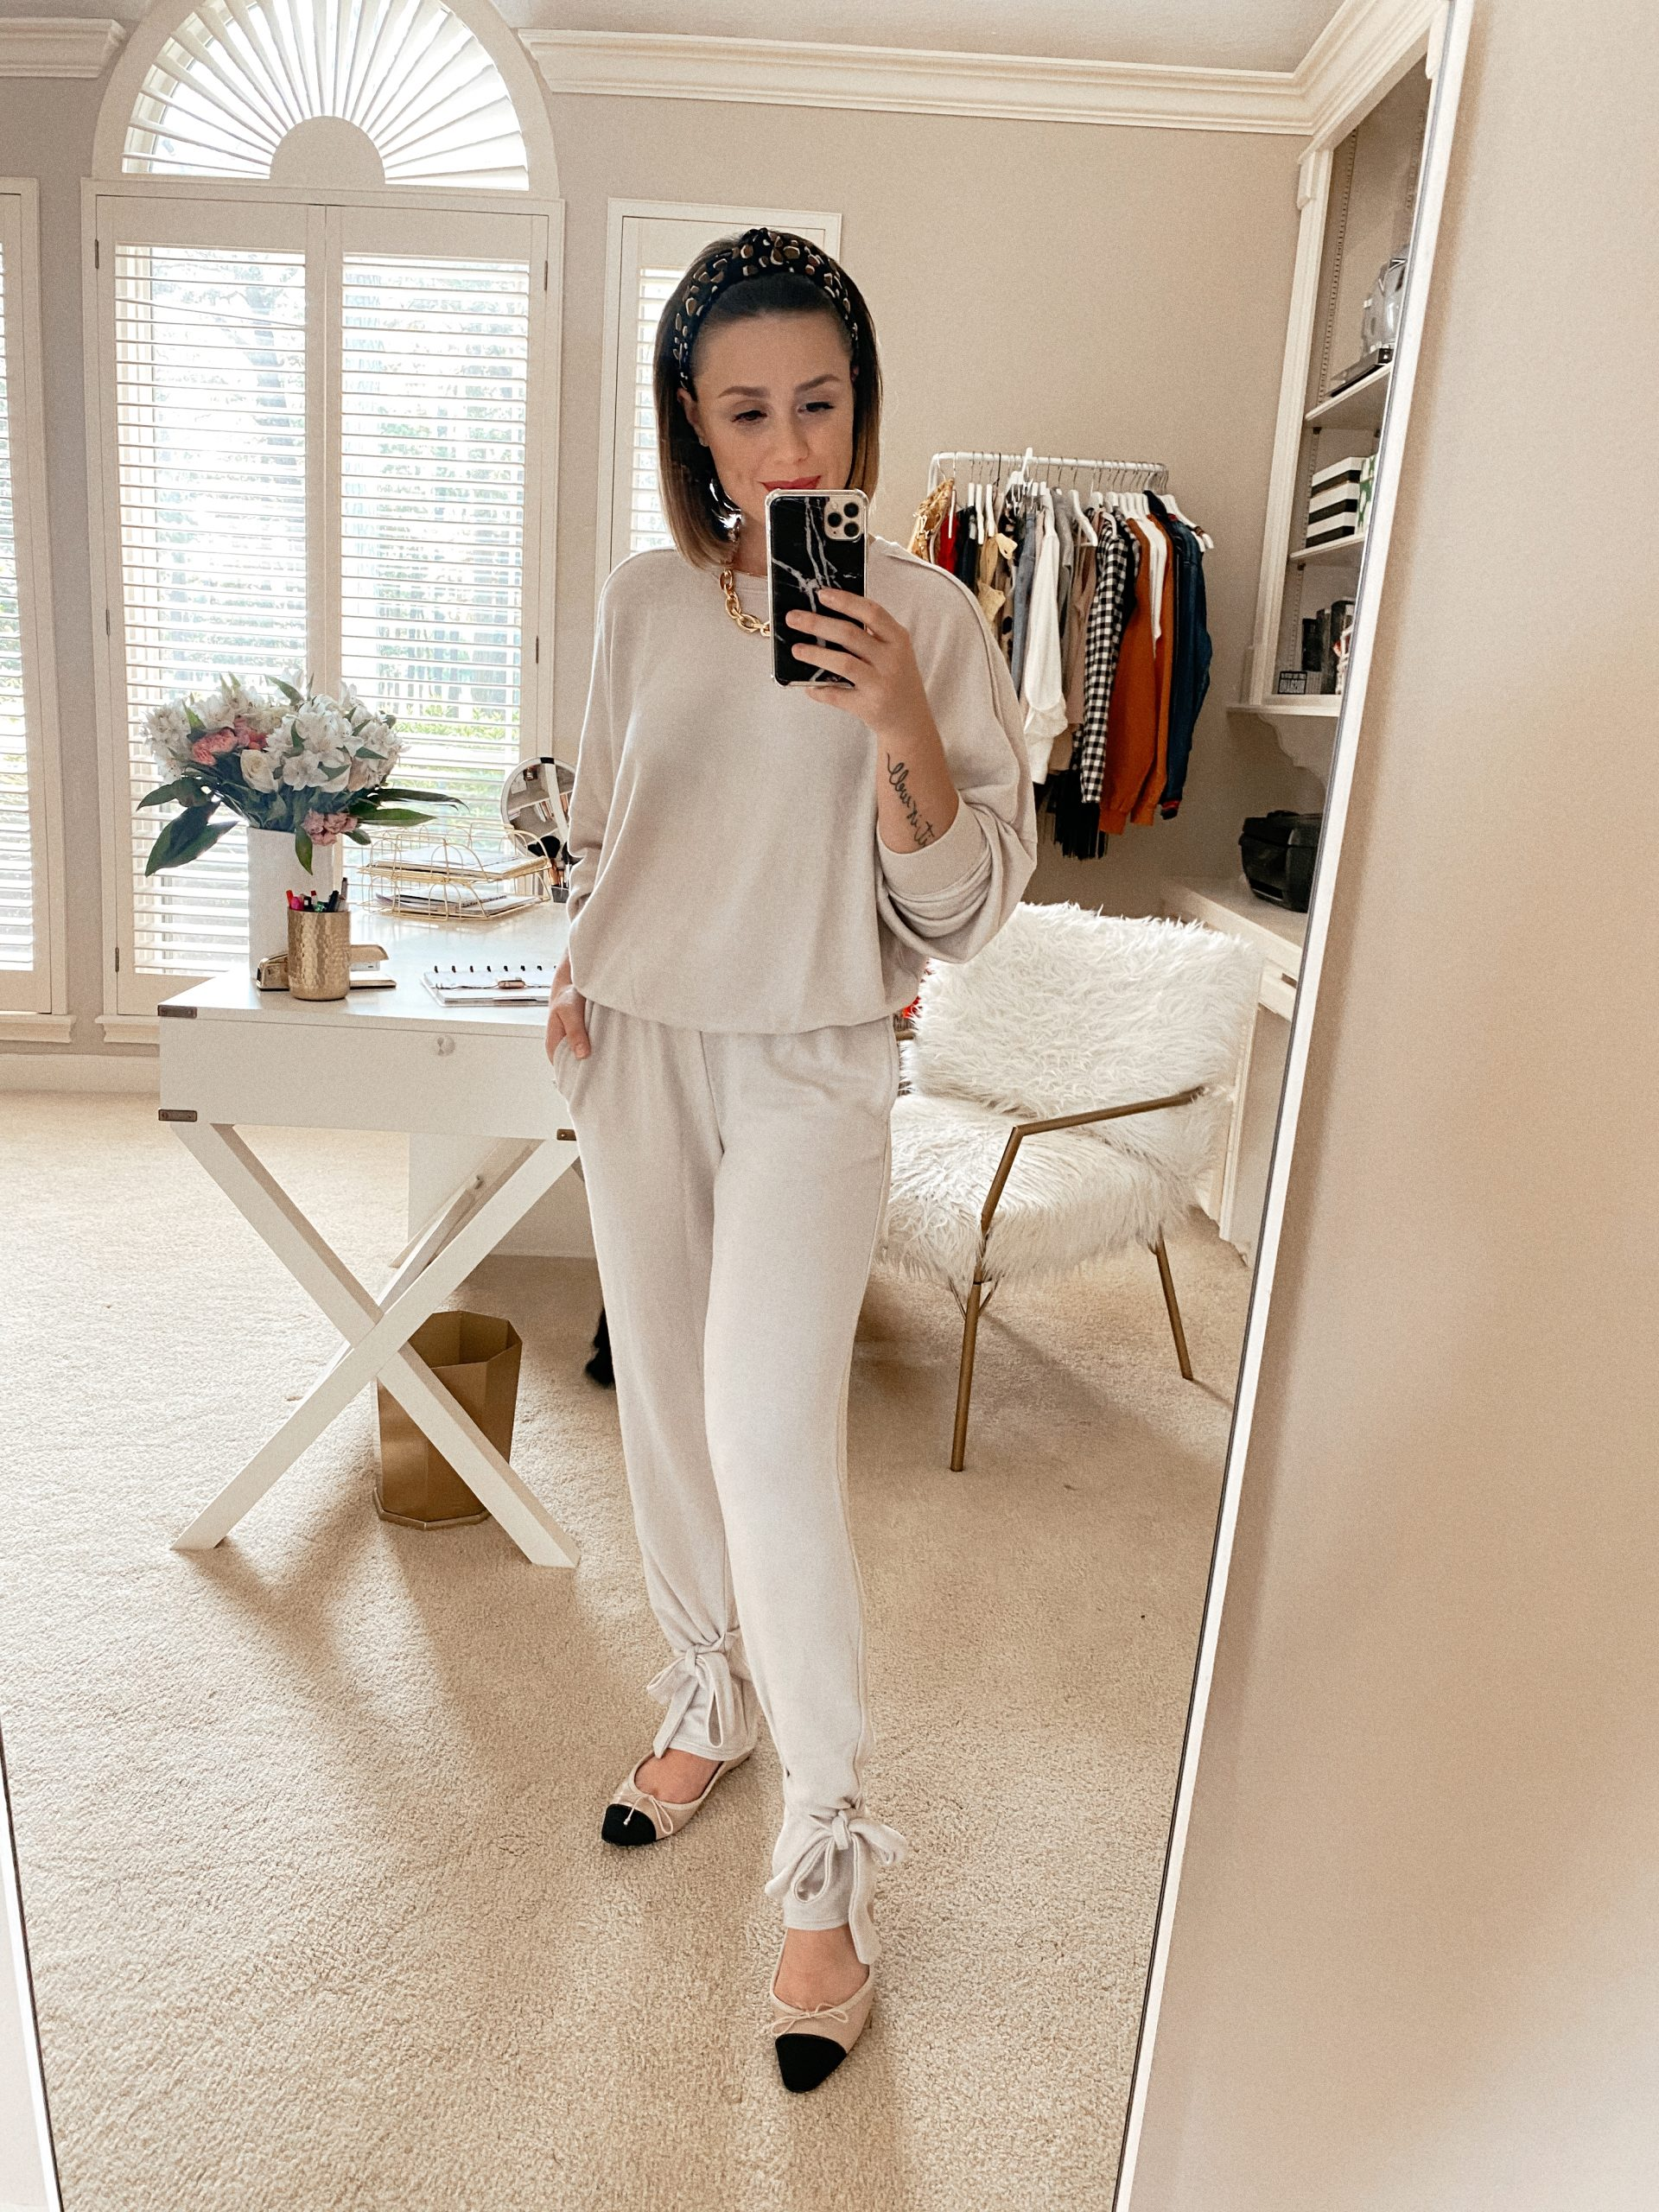 Looking for cute outfits to wear this Fall and Winter while at home? Elly Brown shares 5 Cozy Loungewear Sets you'll love!